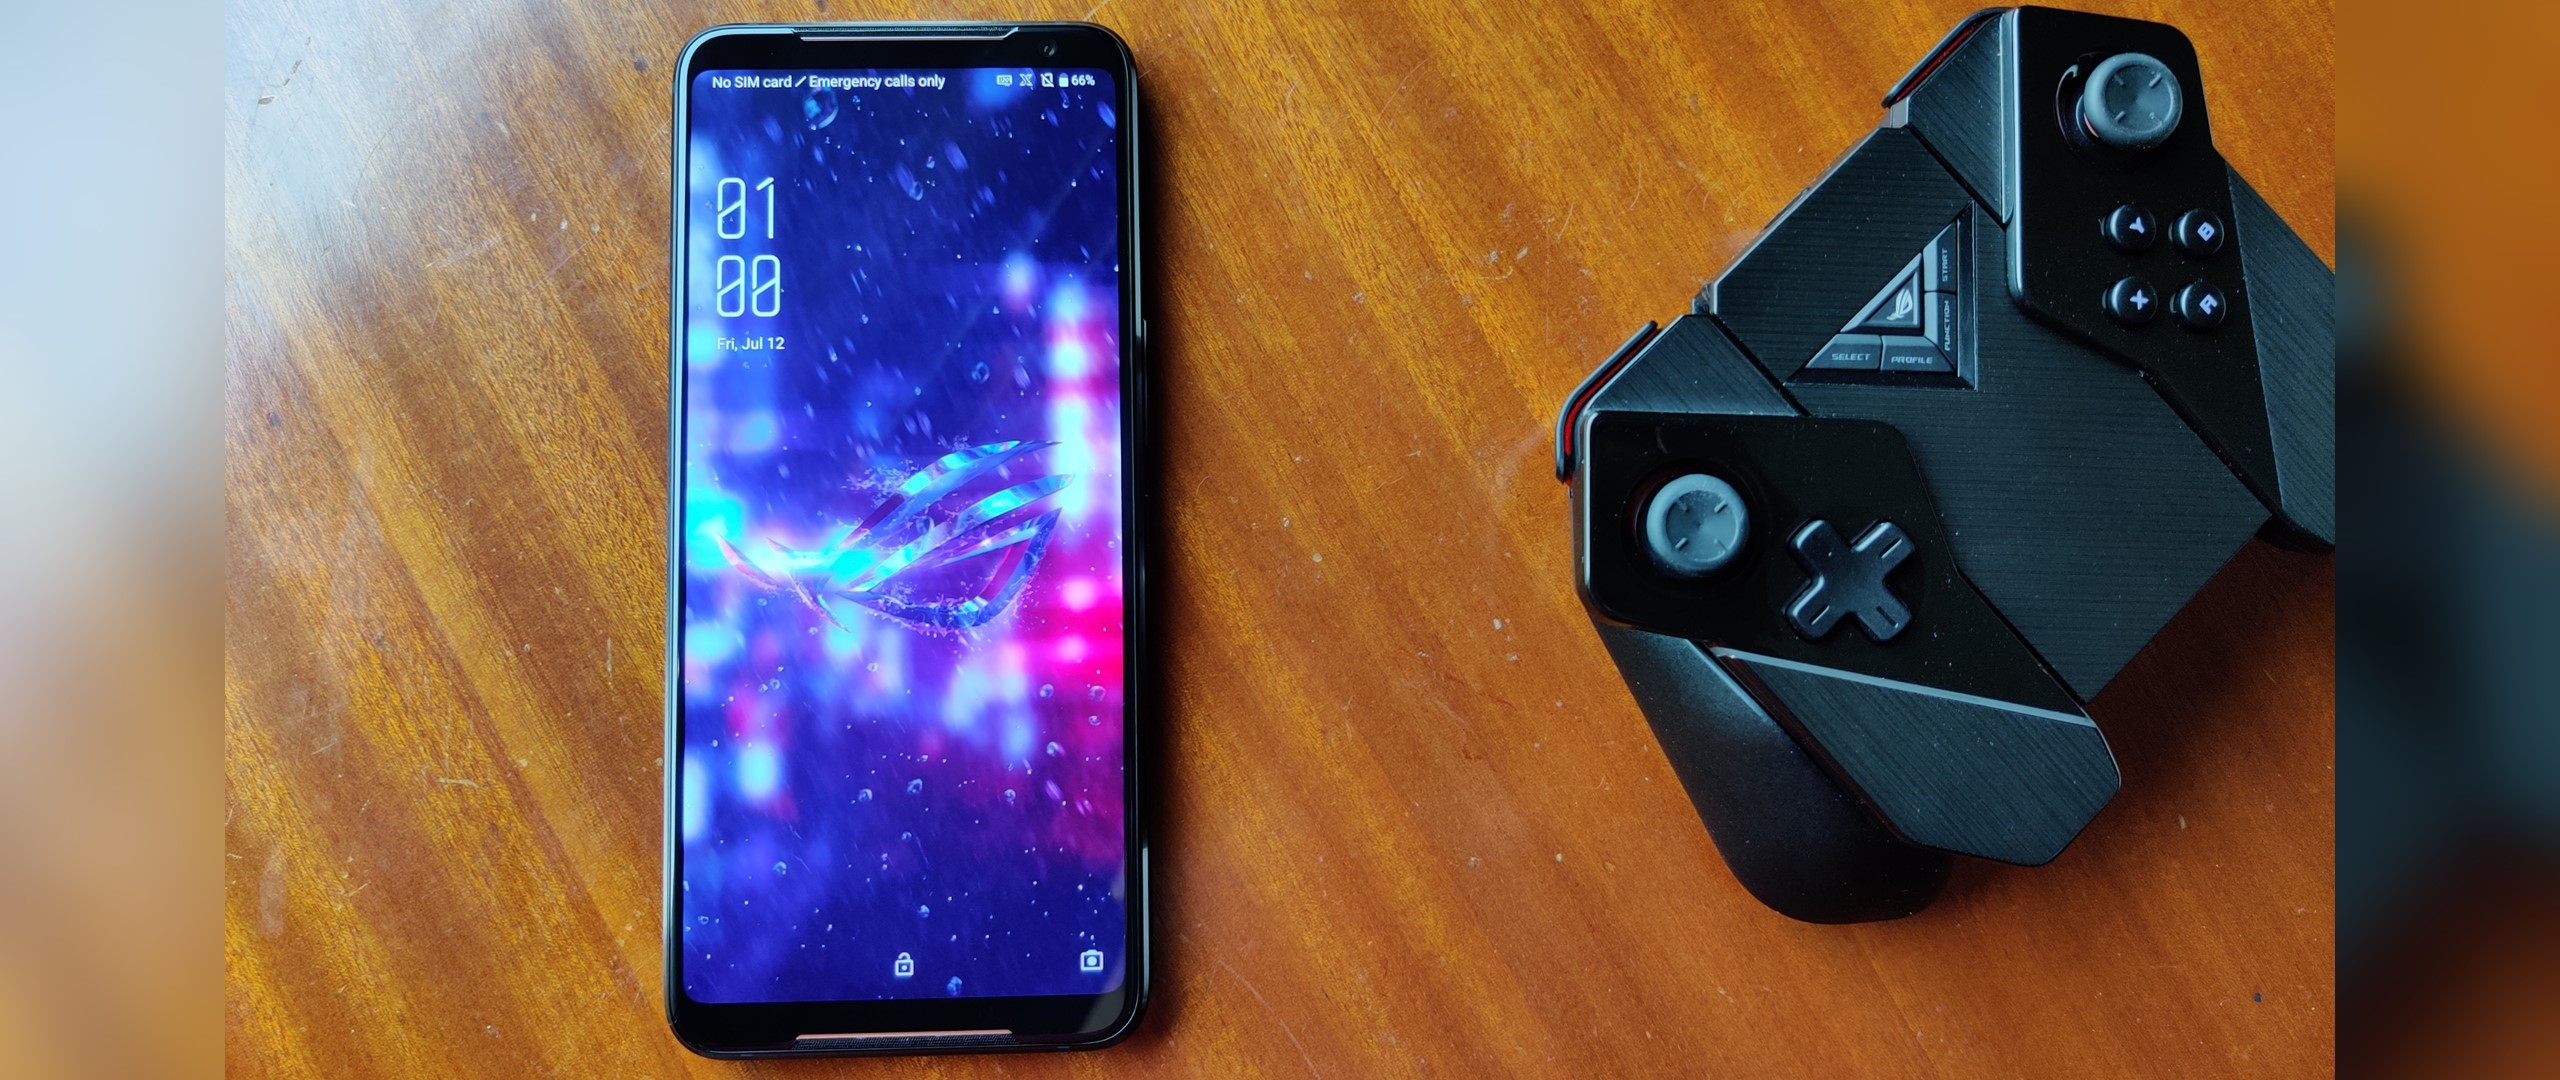 Hands on: Asus ROG Phone 2 review | TechRadar